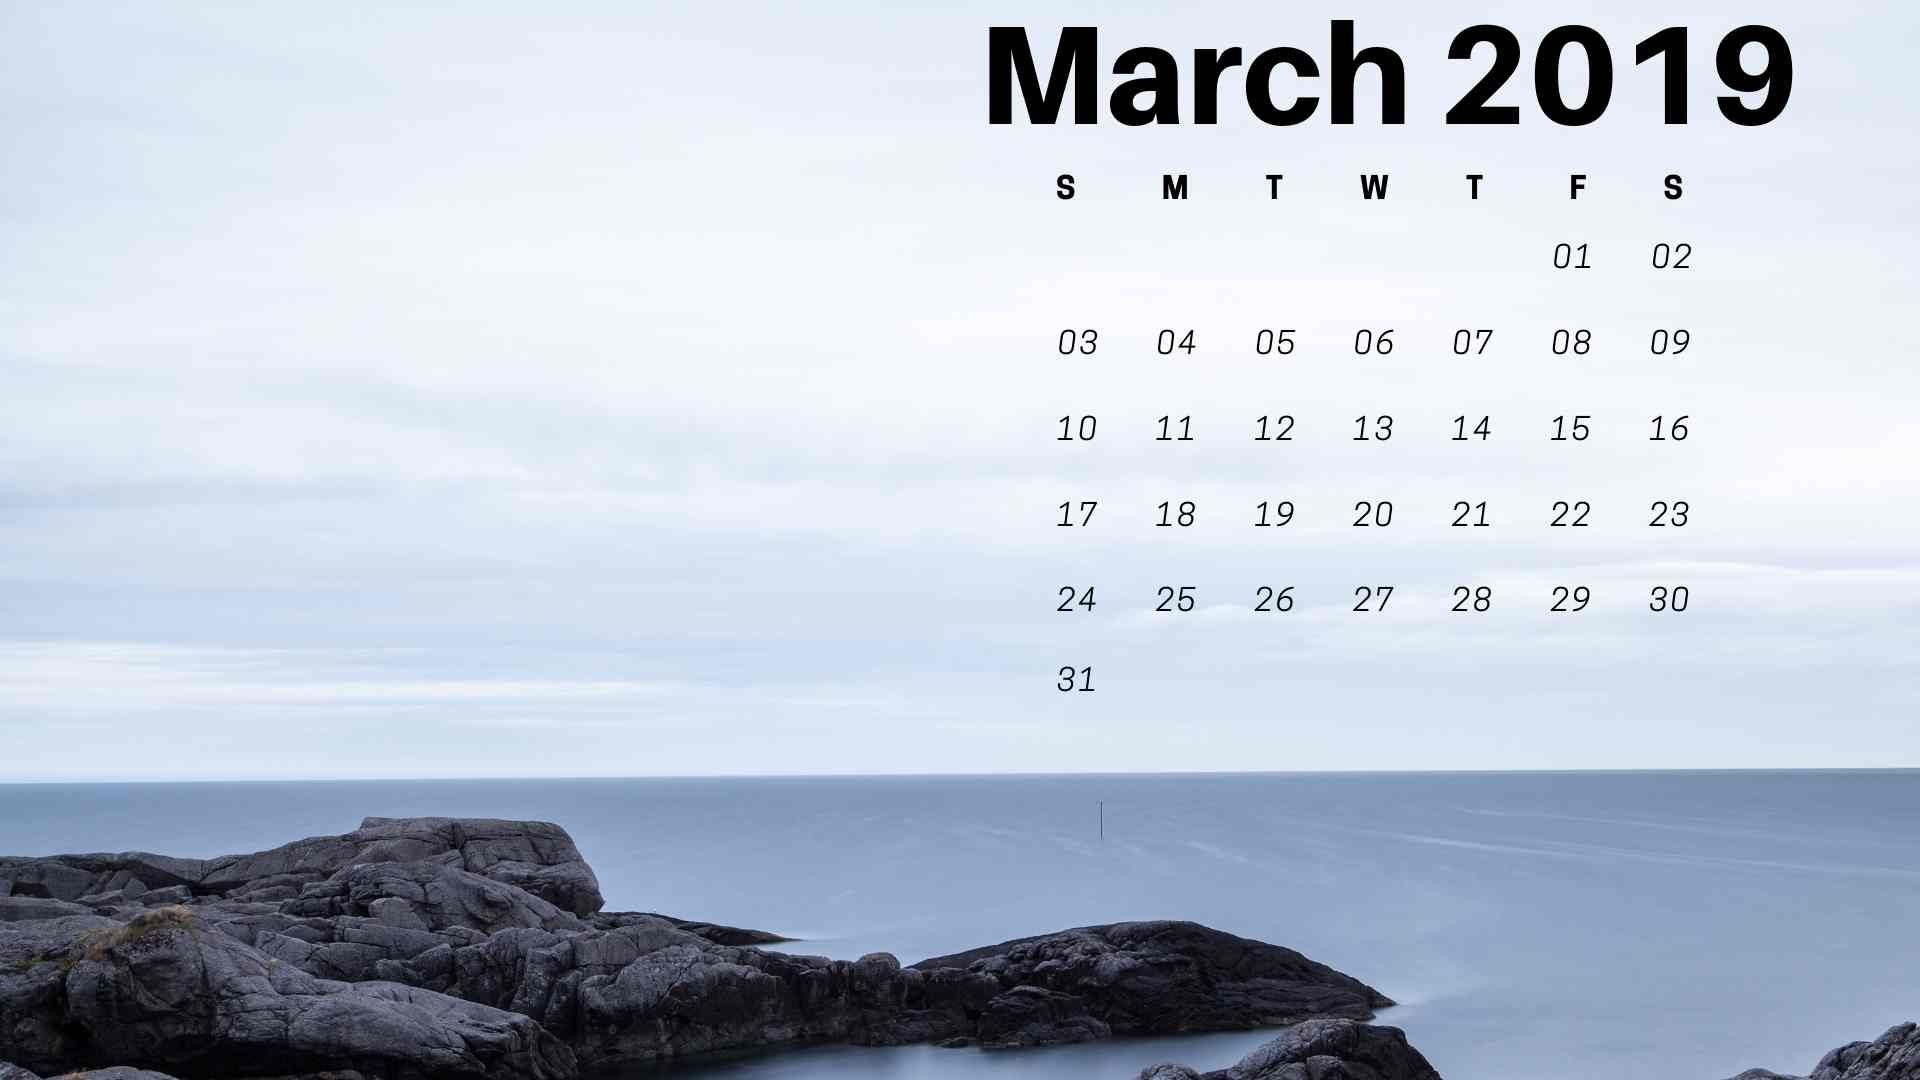 March Calendar Desktop Wallpaper Más Arriba-a-fecha March 2019 Calendar Wallpaper Desktop March Calendar Calenda2019 Of March Calendar Desktop Wallpaper Más Actual March 2019 Desktop Background Calendar